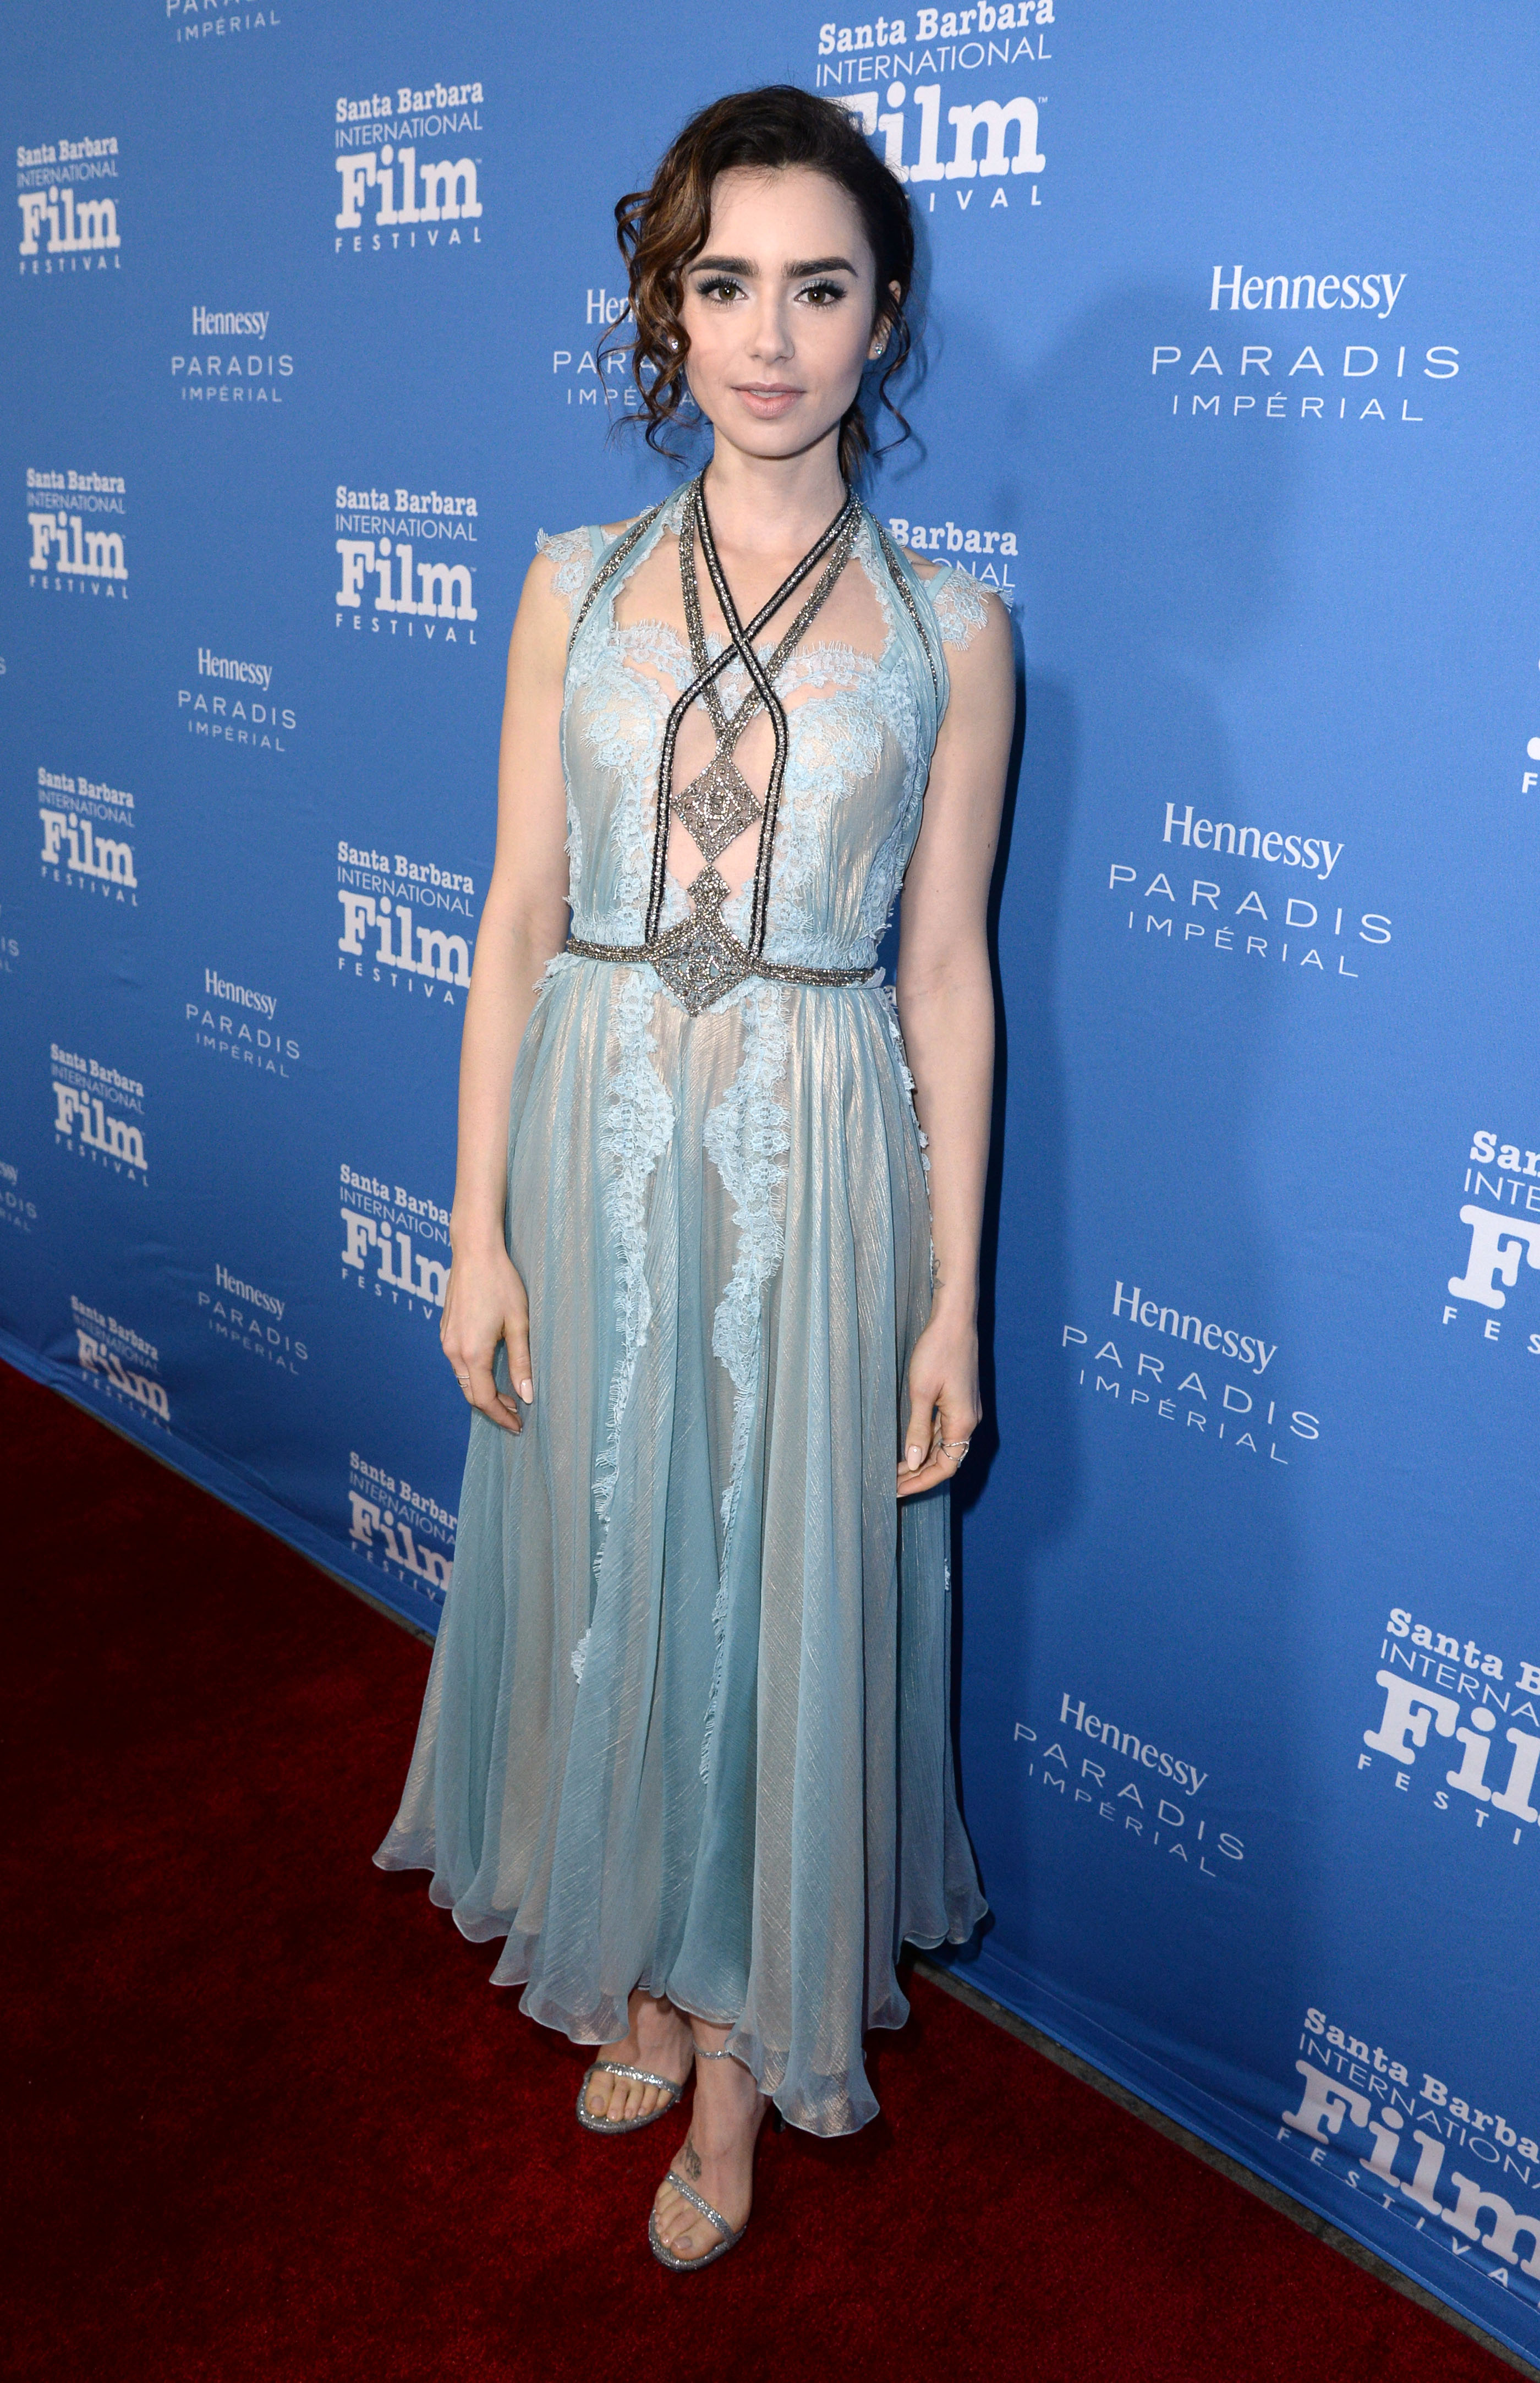 Lily Collins at the Santa Barbara Film Festival. Photo by Stewart Cook/Variety/REX/Shutterstock